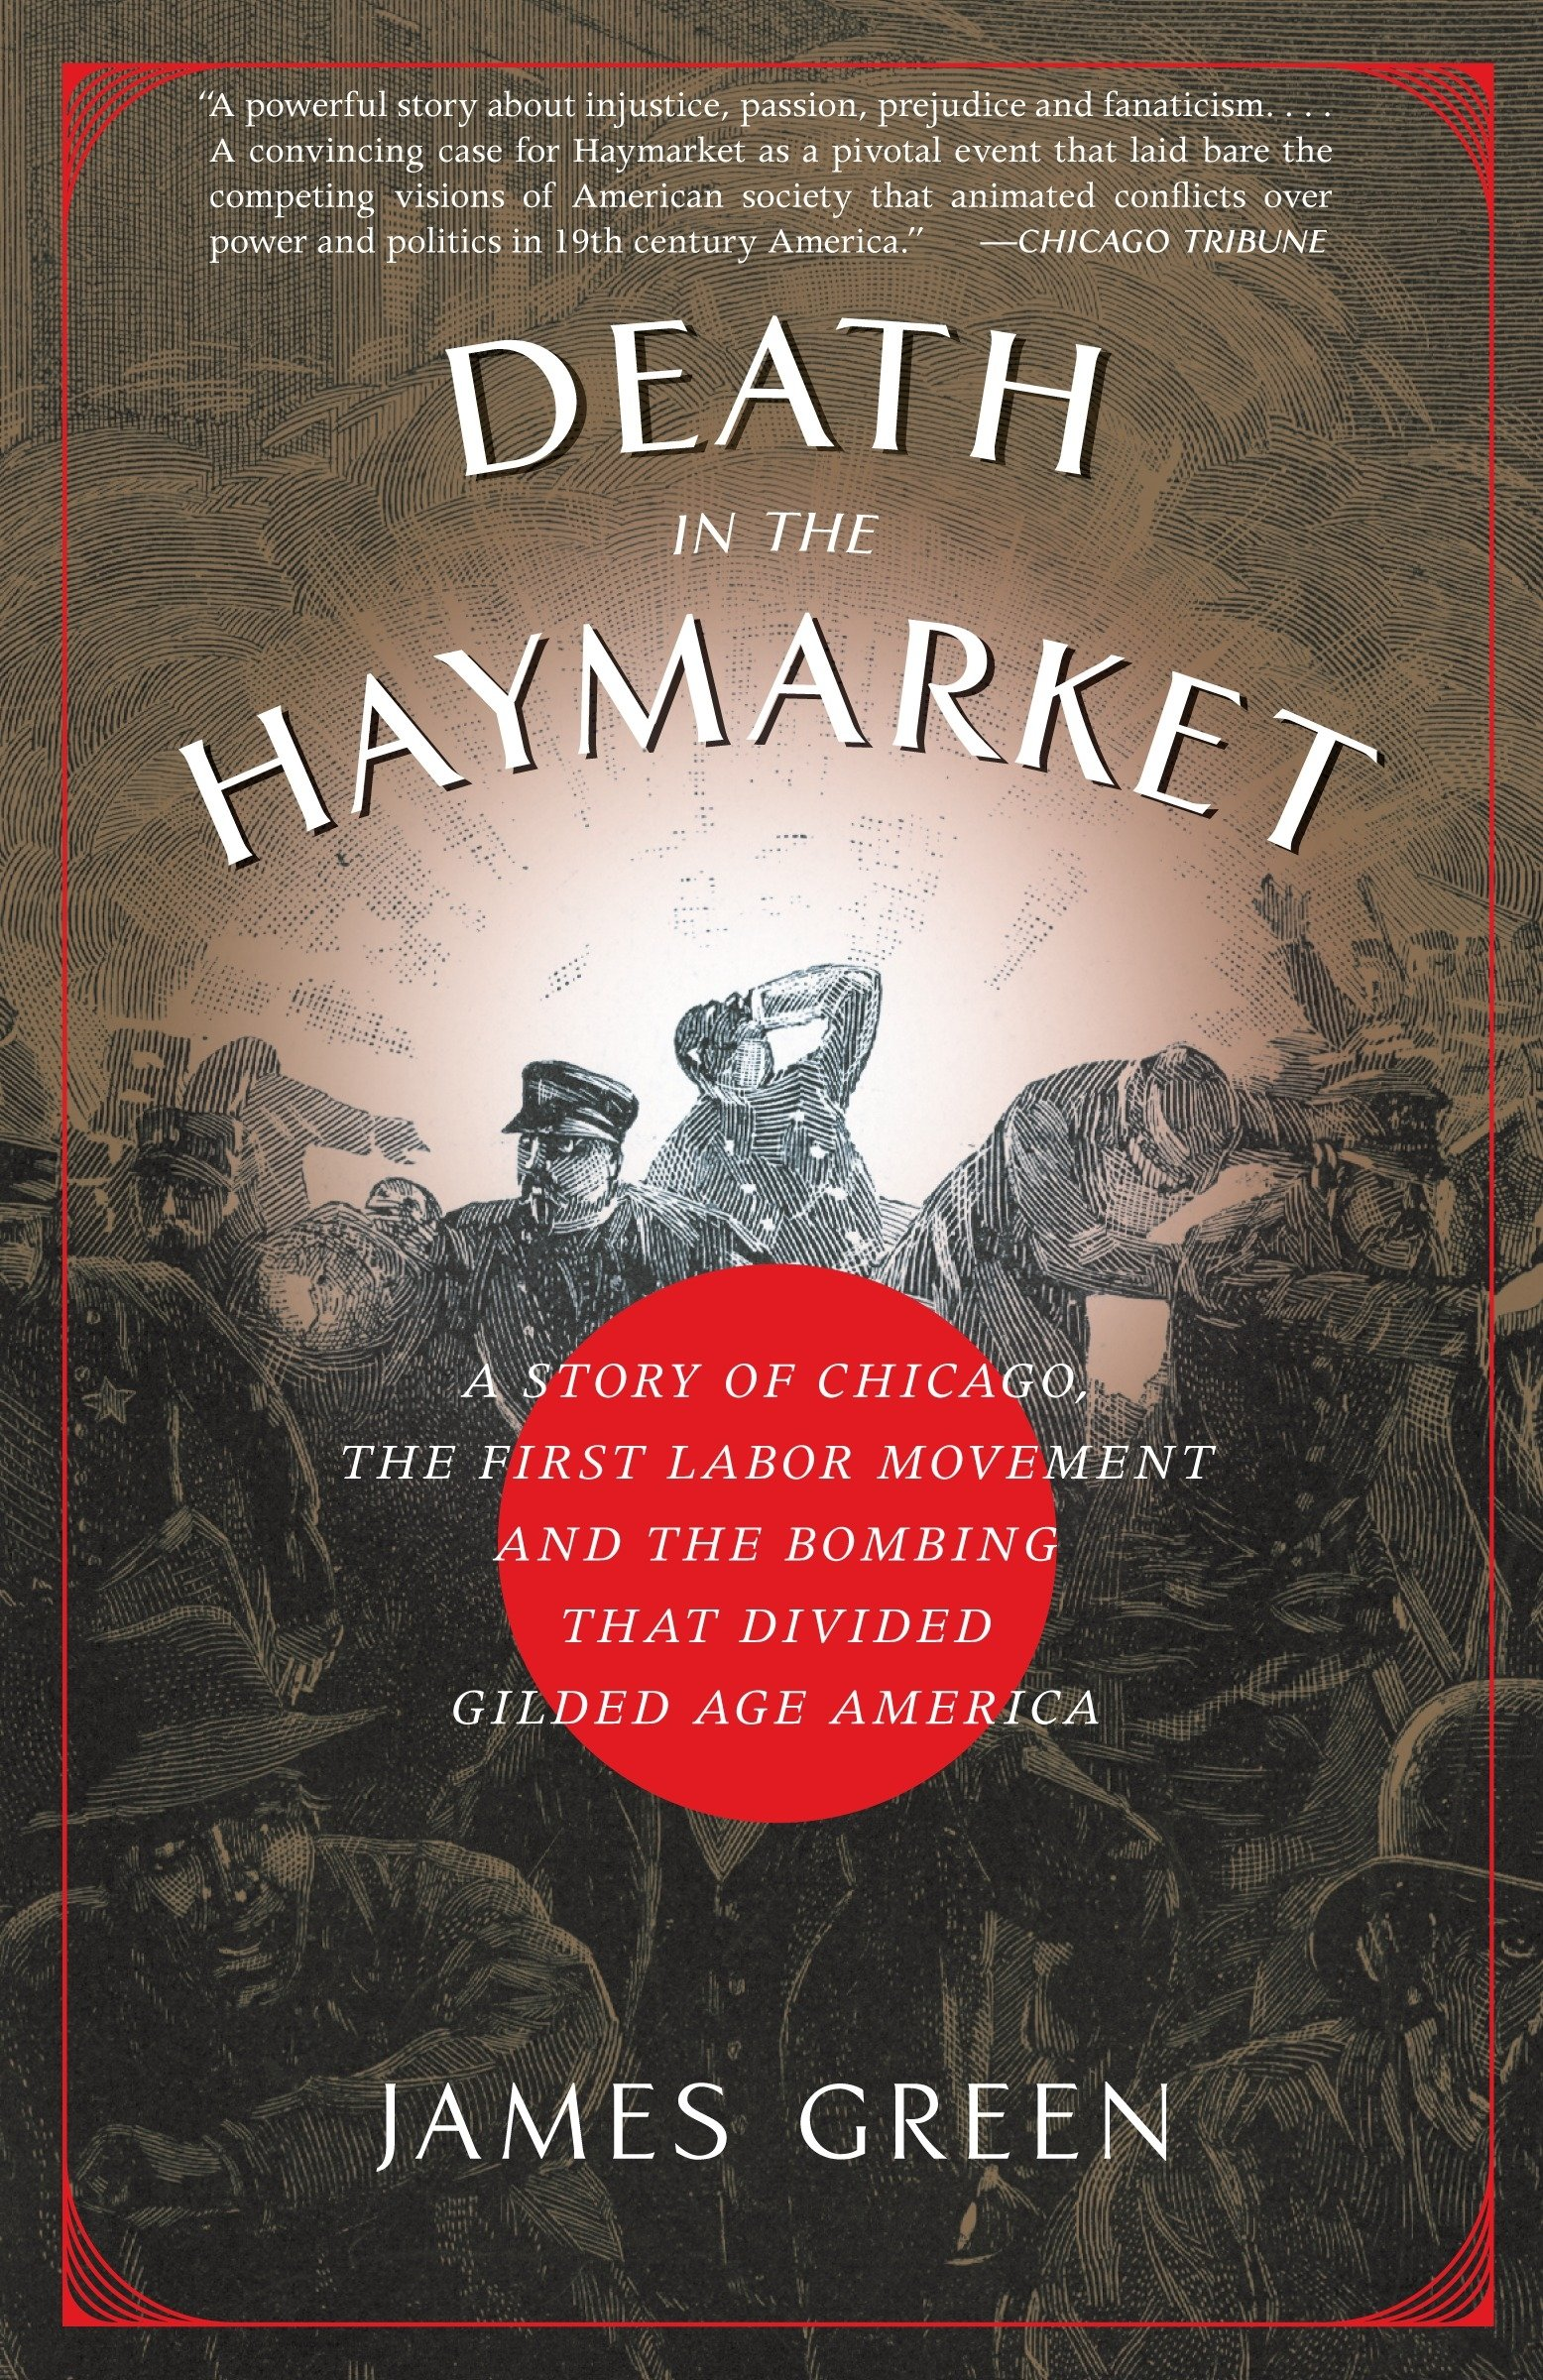 Death in the Haymarket: A Story of Chicago, the First Labor